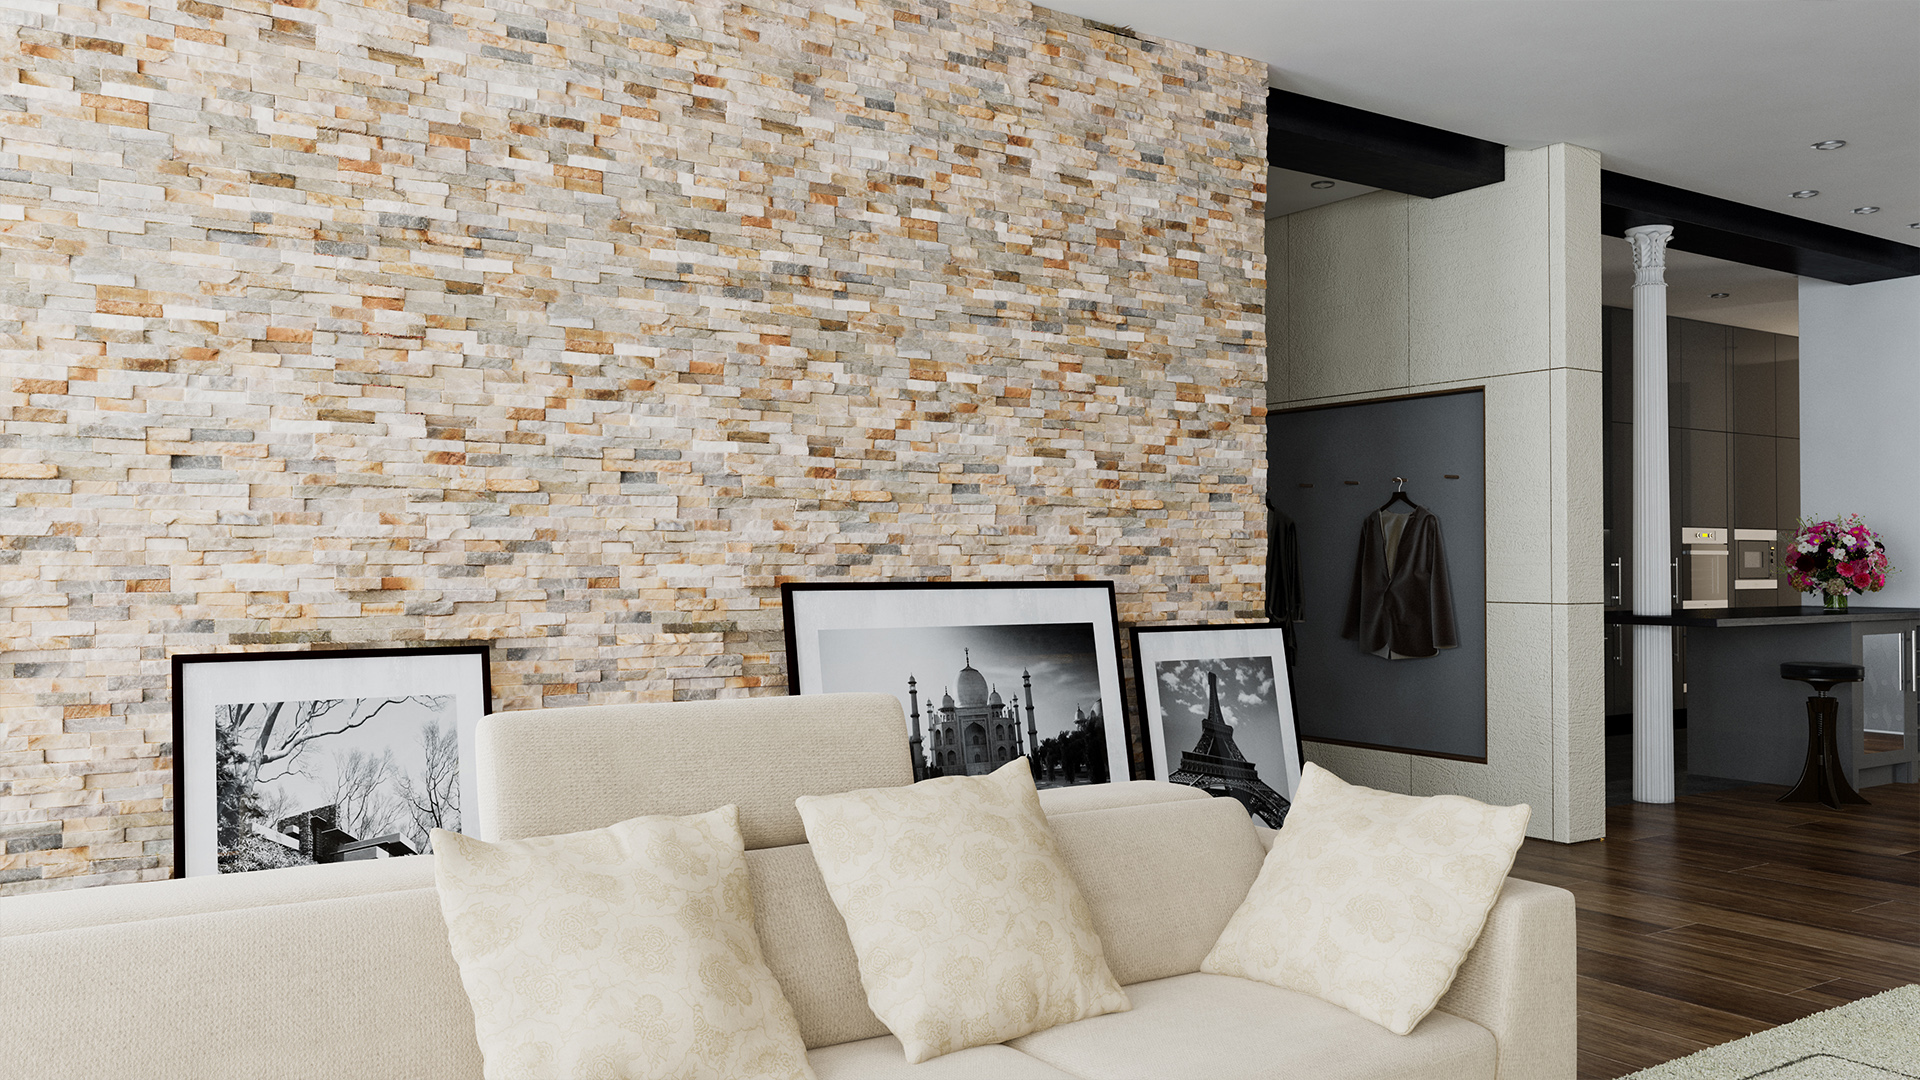 Revetement Mural Exterieur Pas Cher Natural Stone -ivory Colour Stone Cladding For Interior